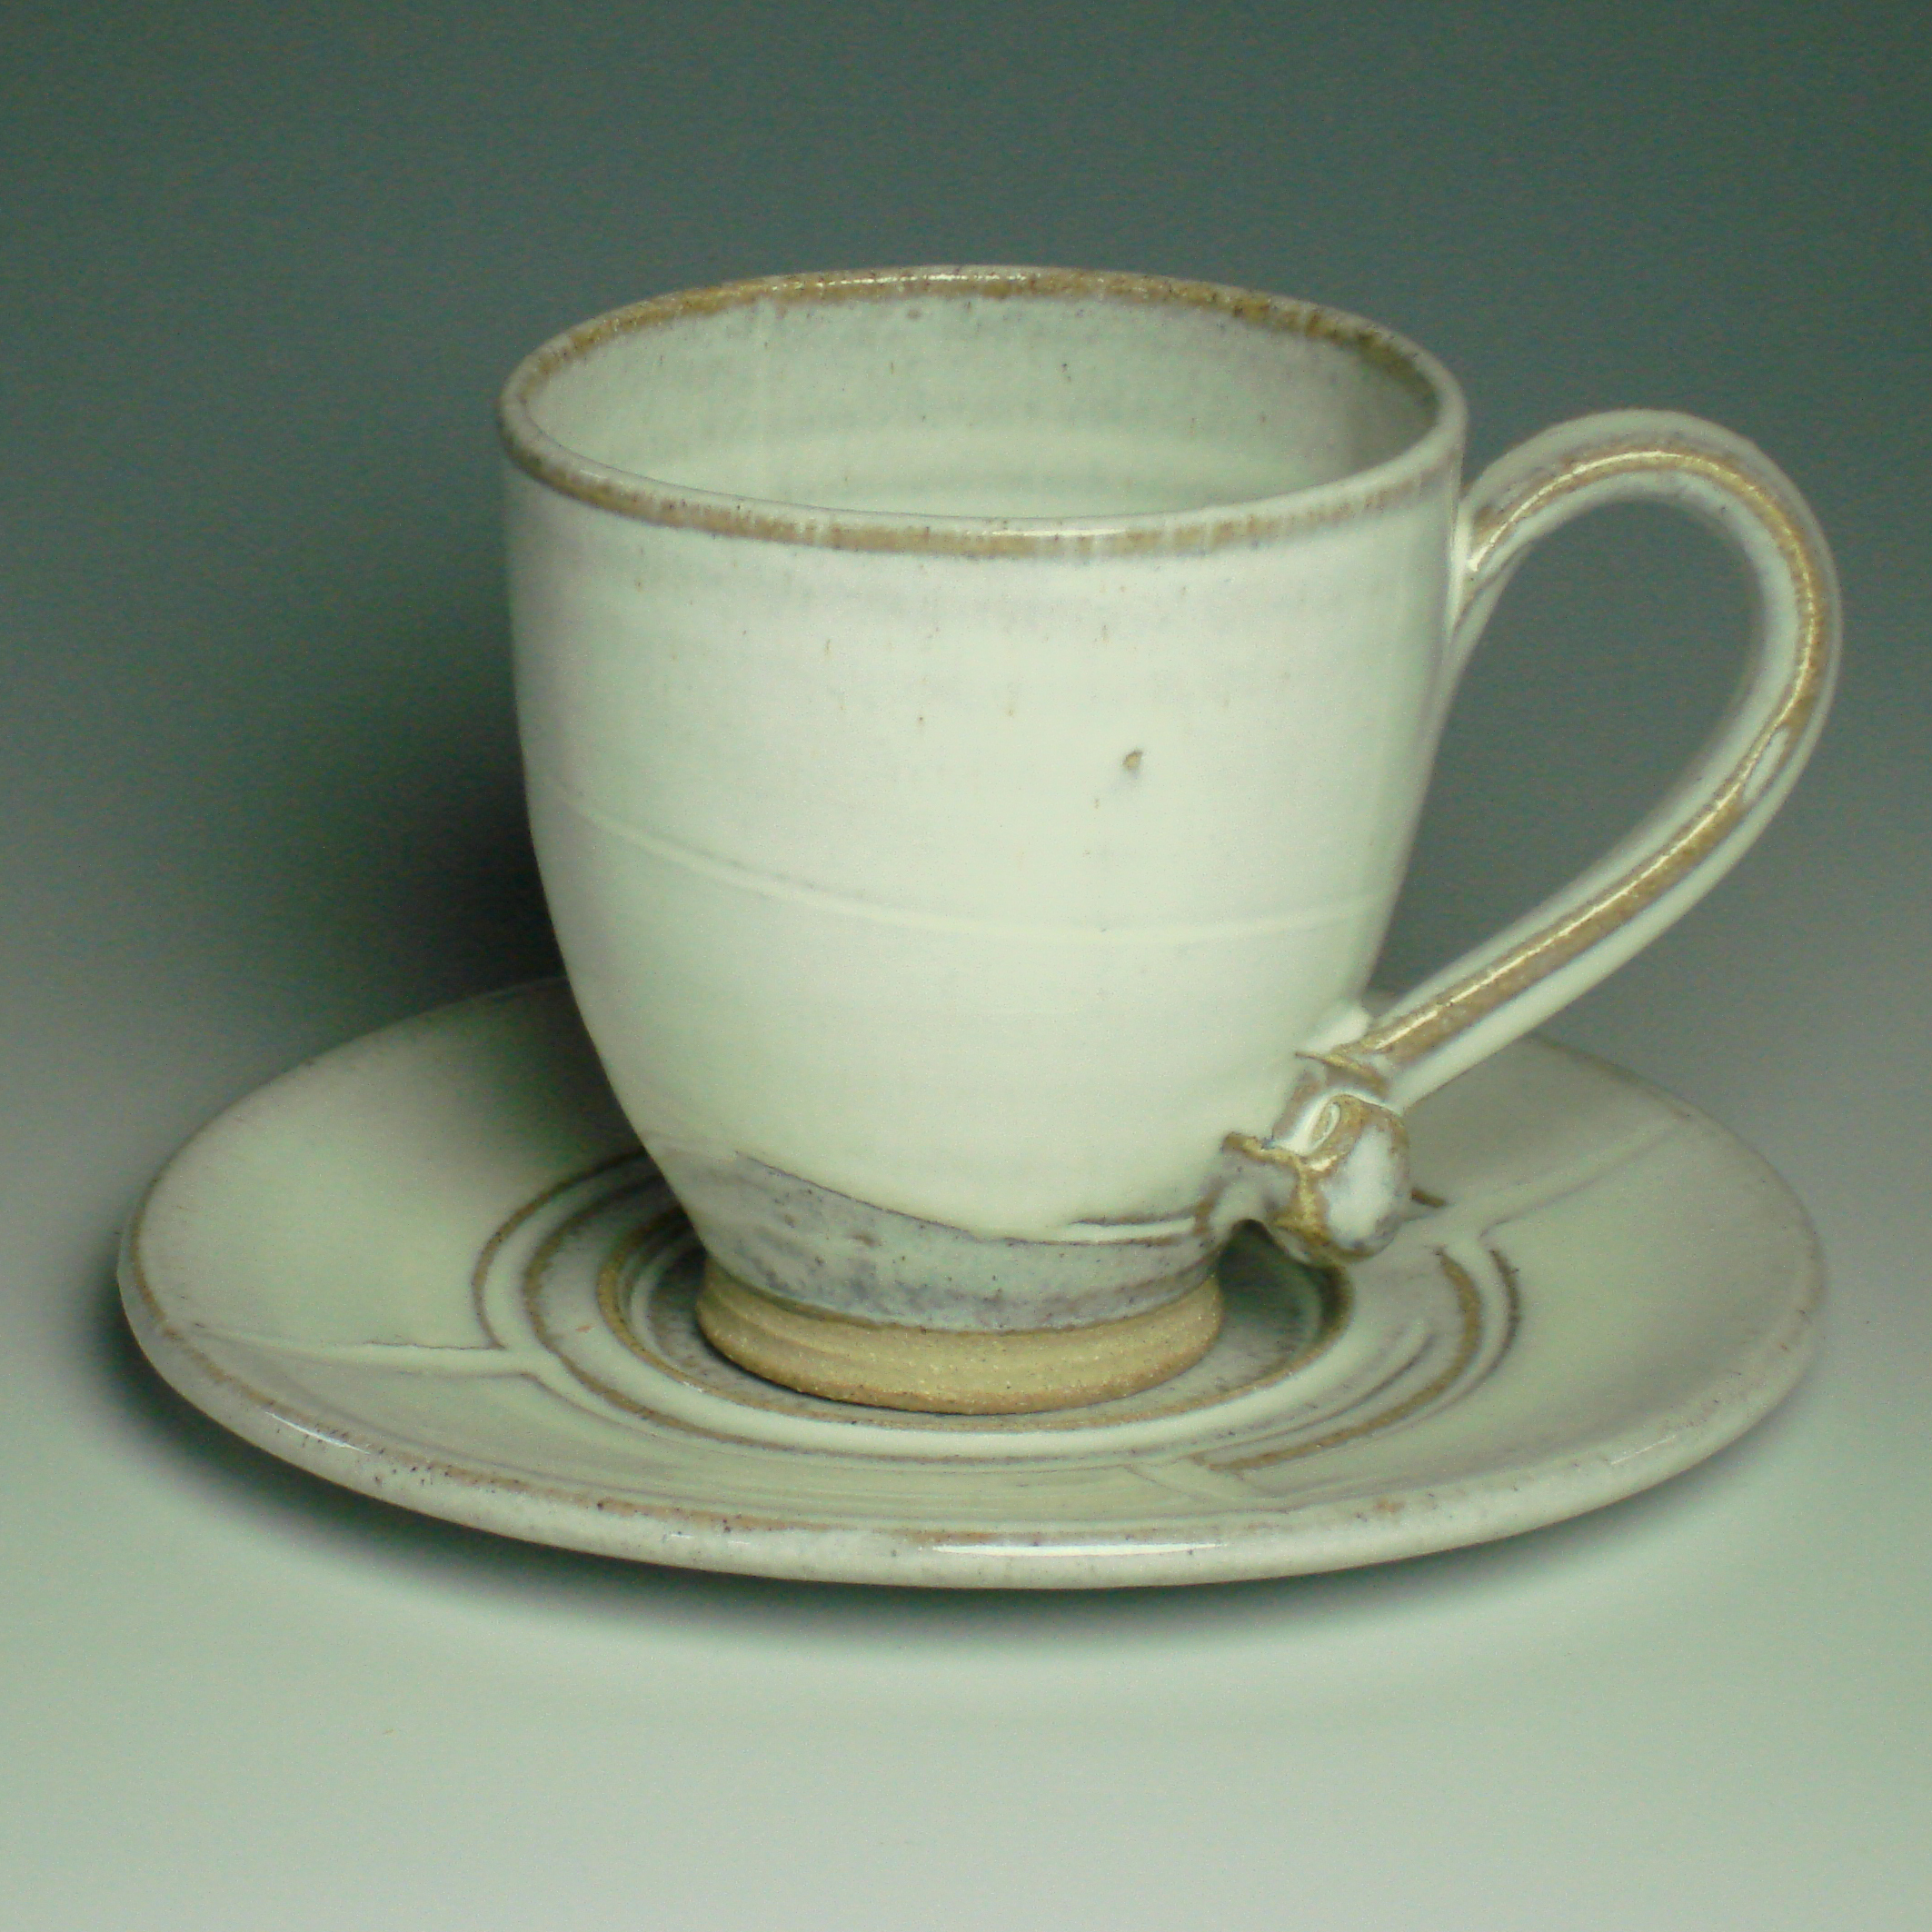 Teacup and saucer - Winter white